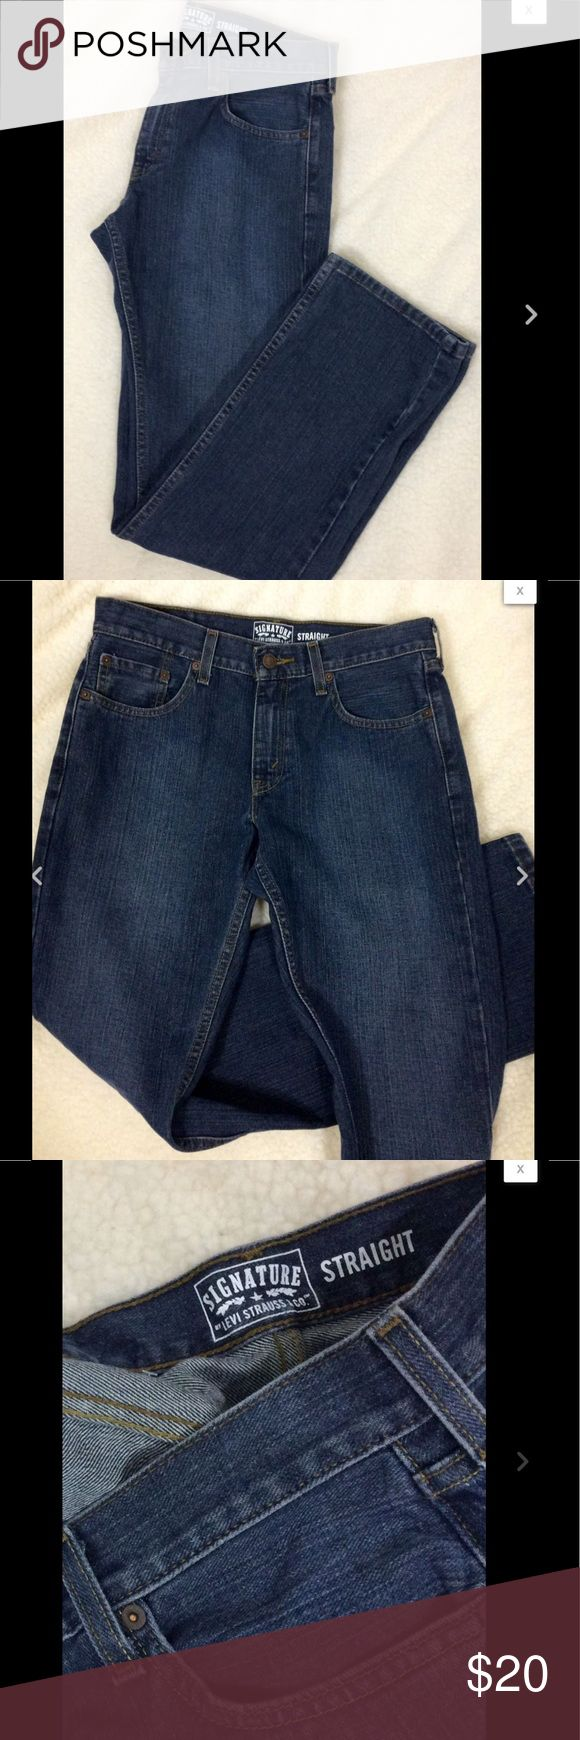 """LEVI STRAUSS Mens Denim Straight Cut Jeans 32W 30L LEVI STRAUSS Mens Denim Straight Cut Jeans / 100% Cotton Size 32W 30L   Great condition  Waist 30"""" Inseam 32""""  Front Rise 9""""   Thanks for looking!   B727 Jeans Straight"""